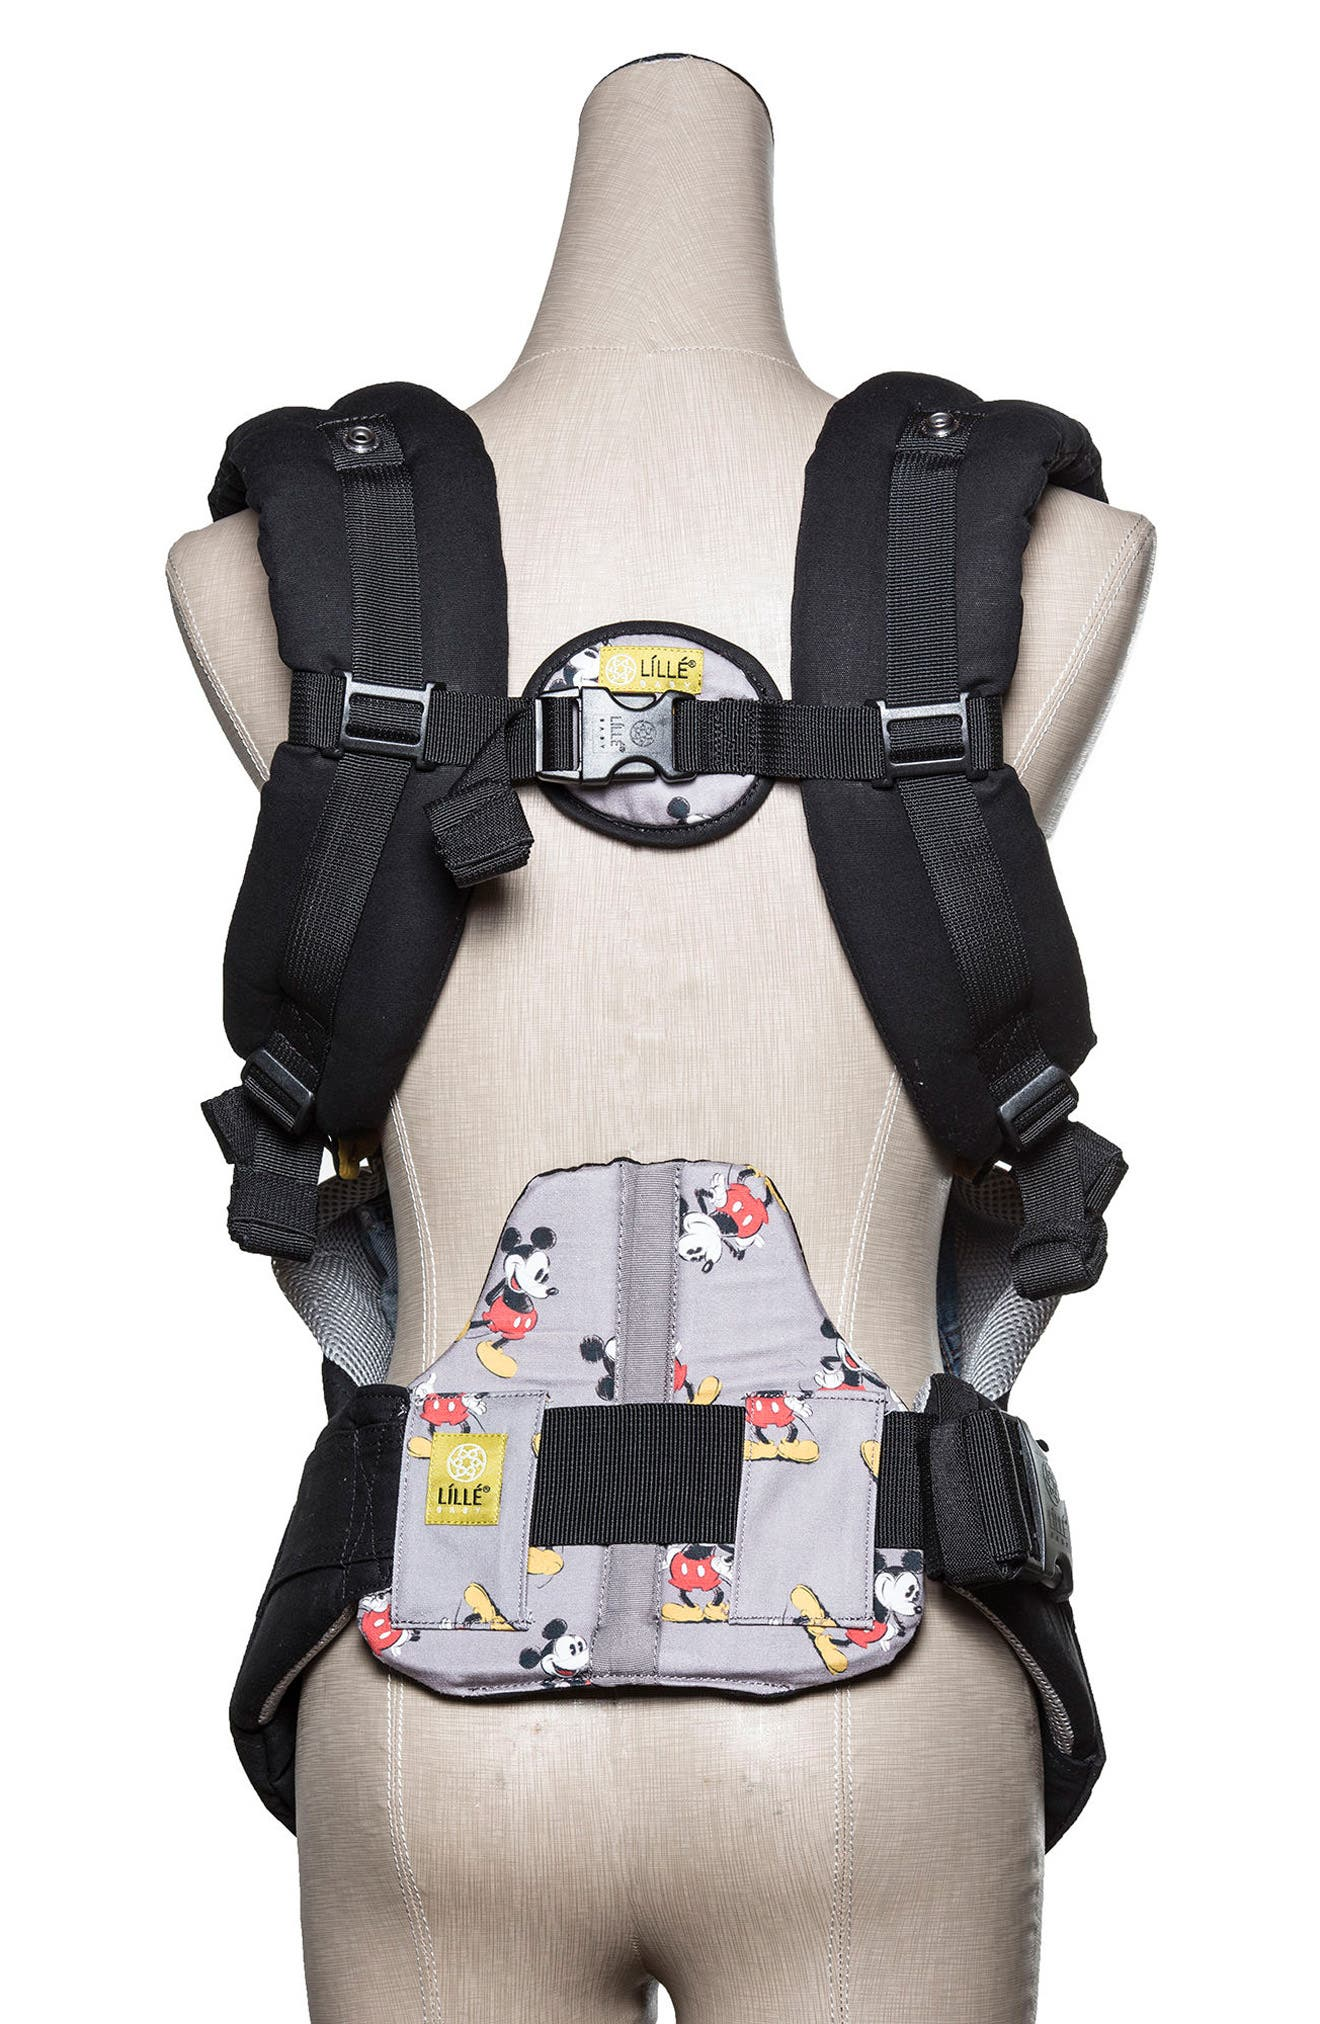 x Disney<sup>®</sup> Complete All Seasons - Mickey Mouse Classic Baby Carrier,                             Alternate thumbnail 2, color,                             001